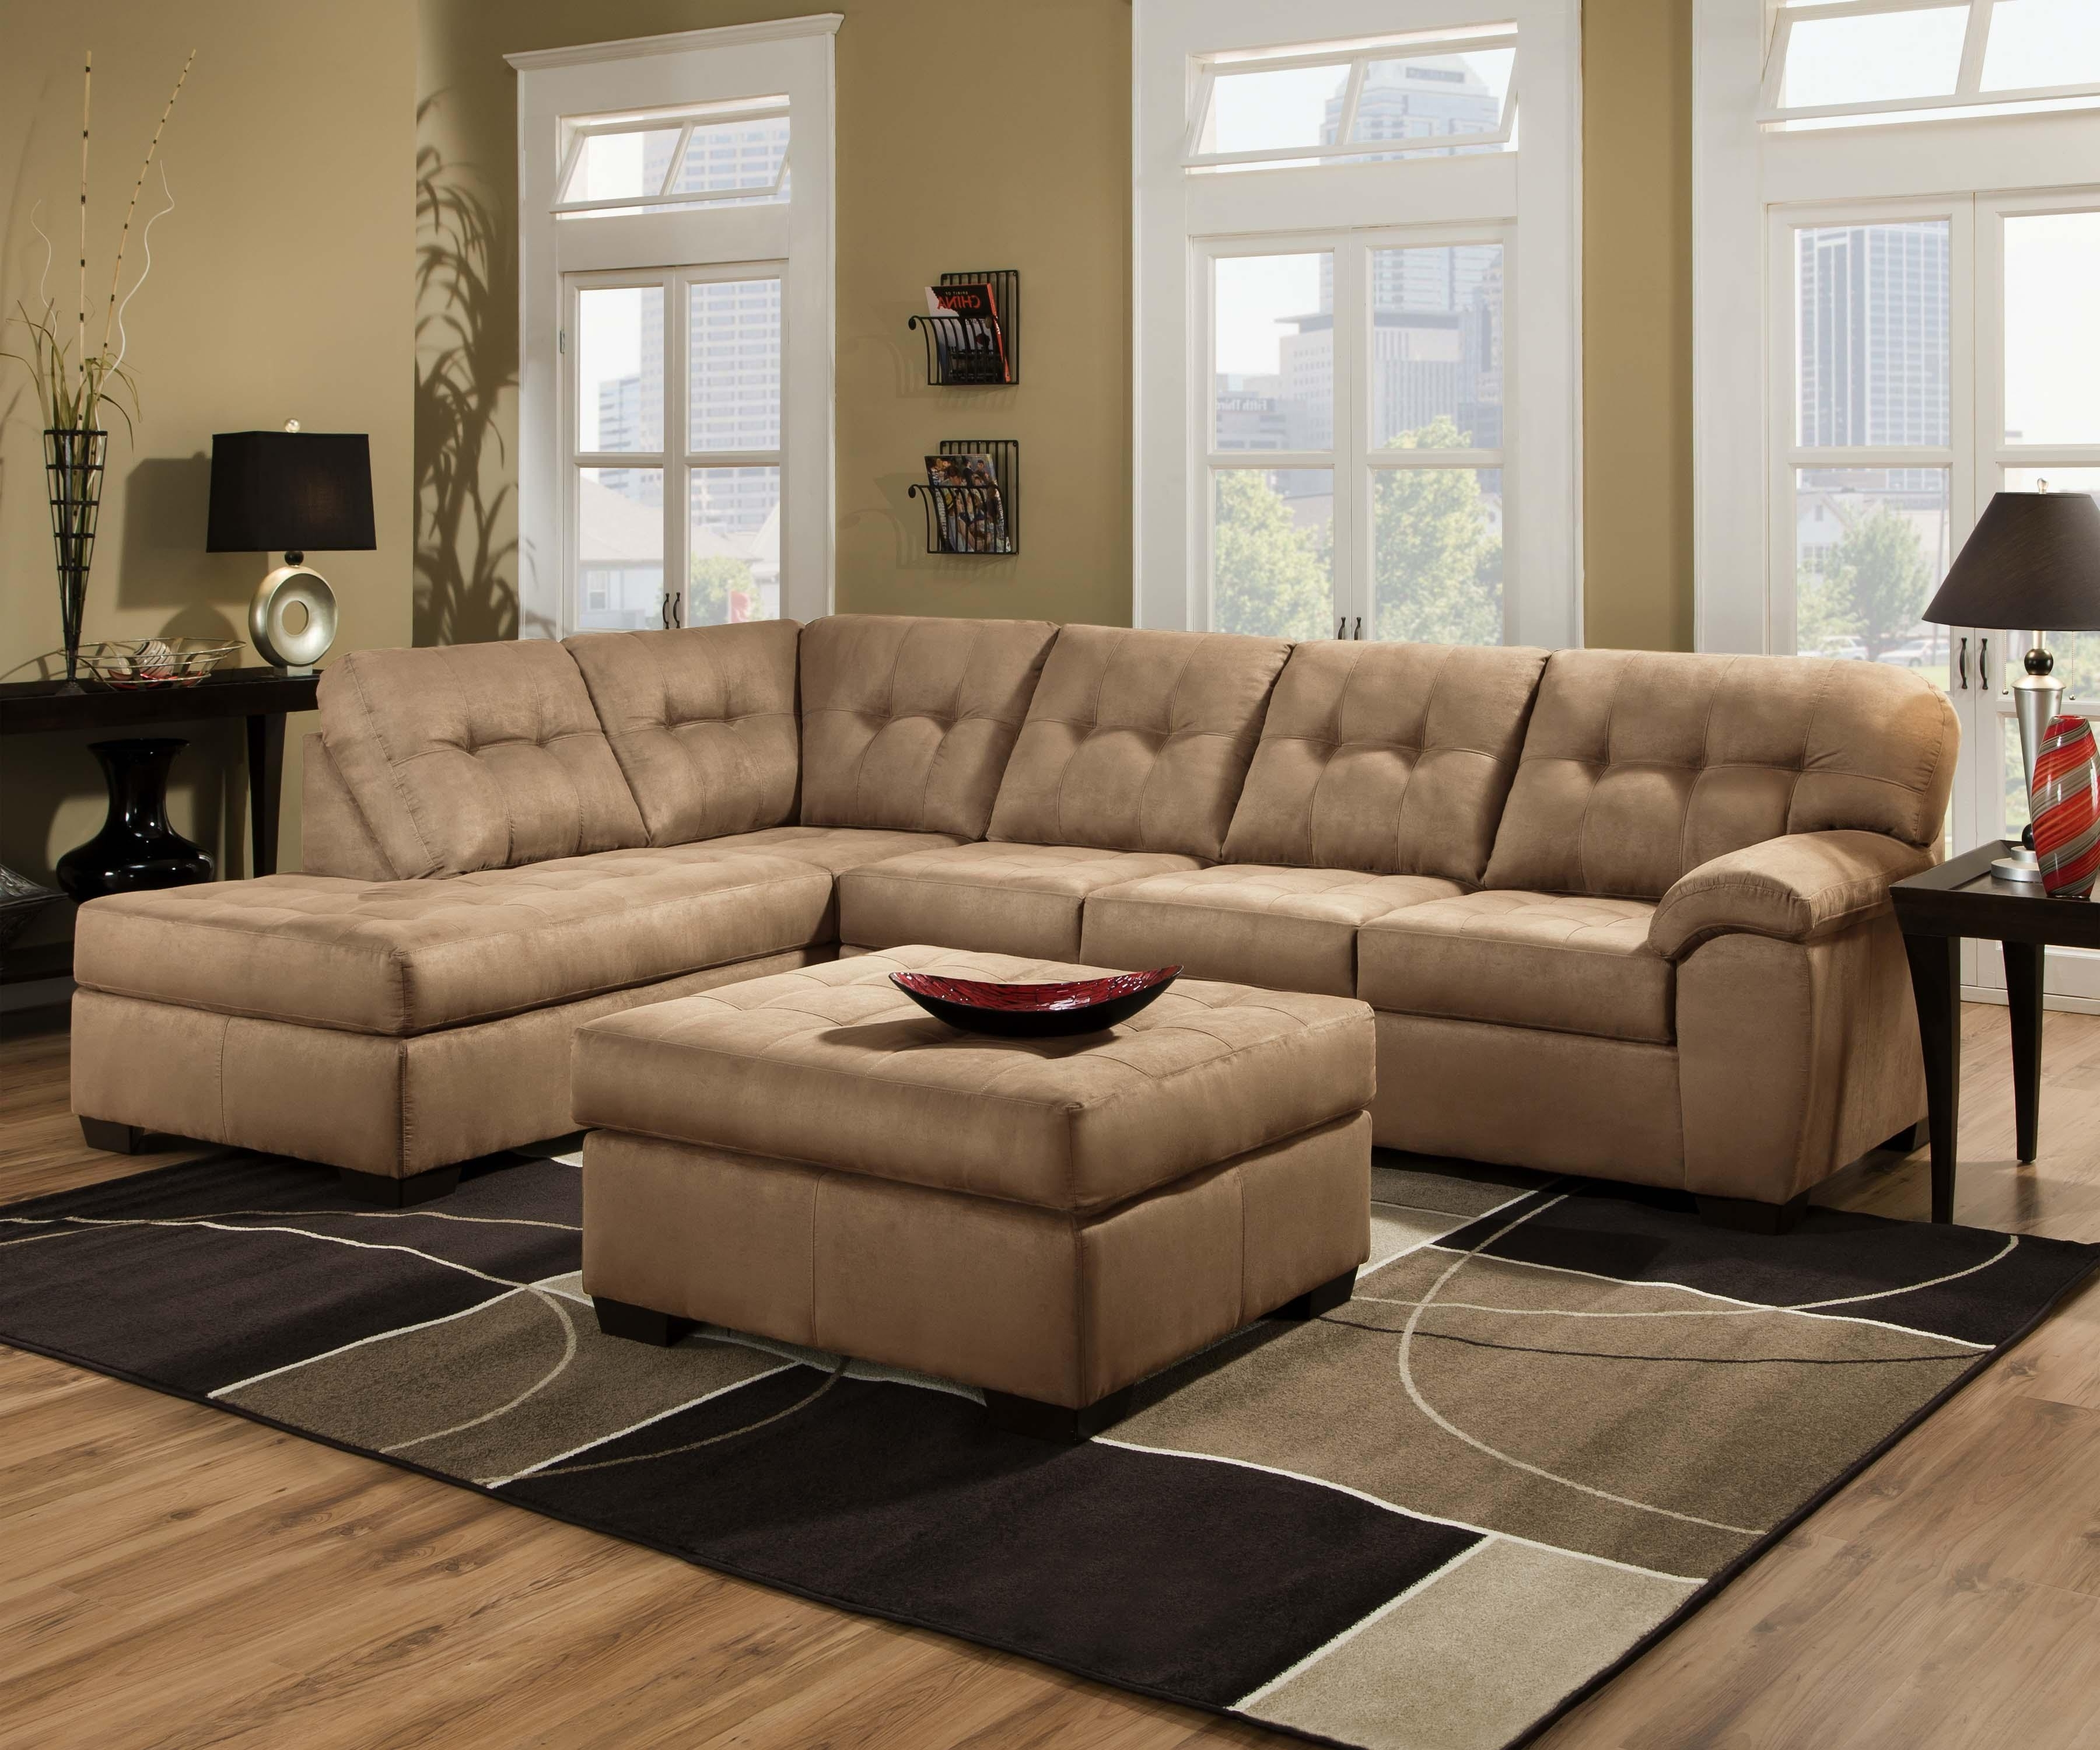 Most Recent Greenville Nc Sectional Sofas With Regard To United Furniture Industries 9558 Transitional 2 Piece Sectional (View 19 of 20)